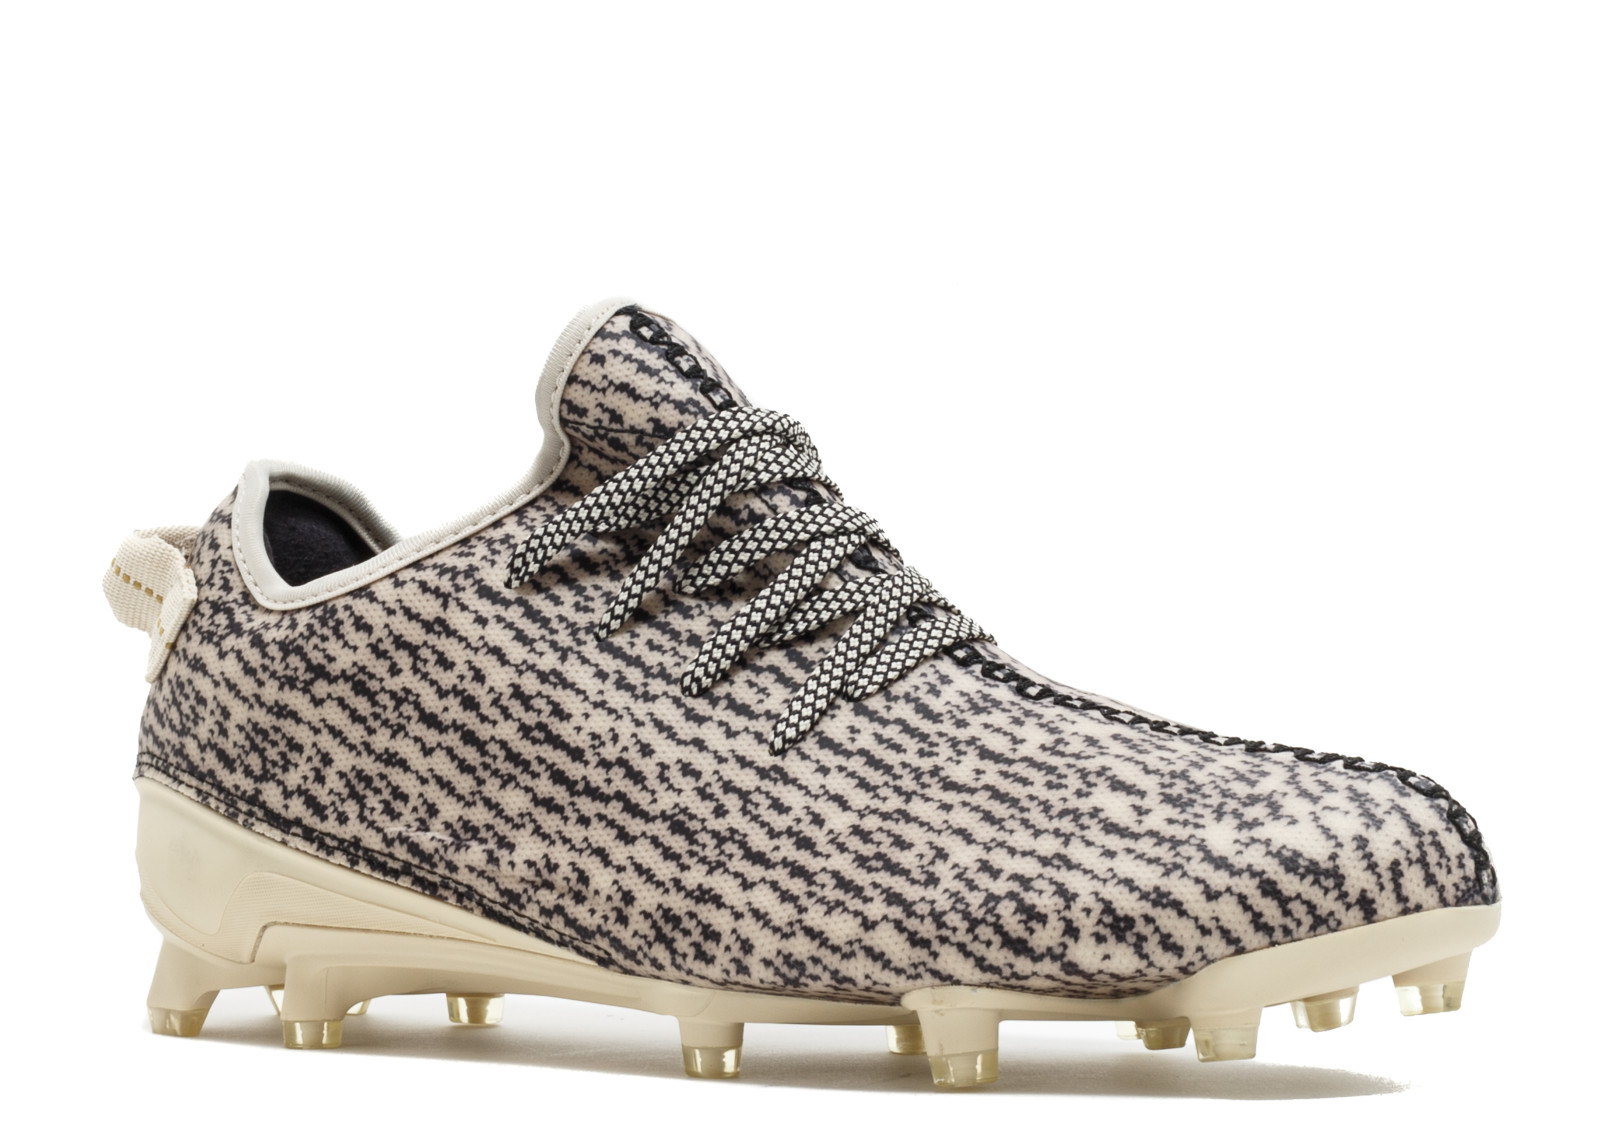 85ea2b852 adidas Yeezy 350 Cleat Turtledove - 1